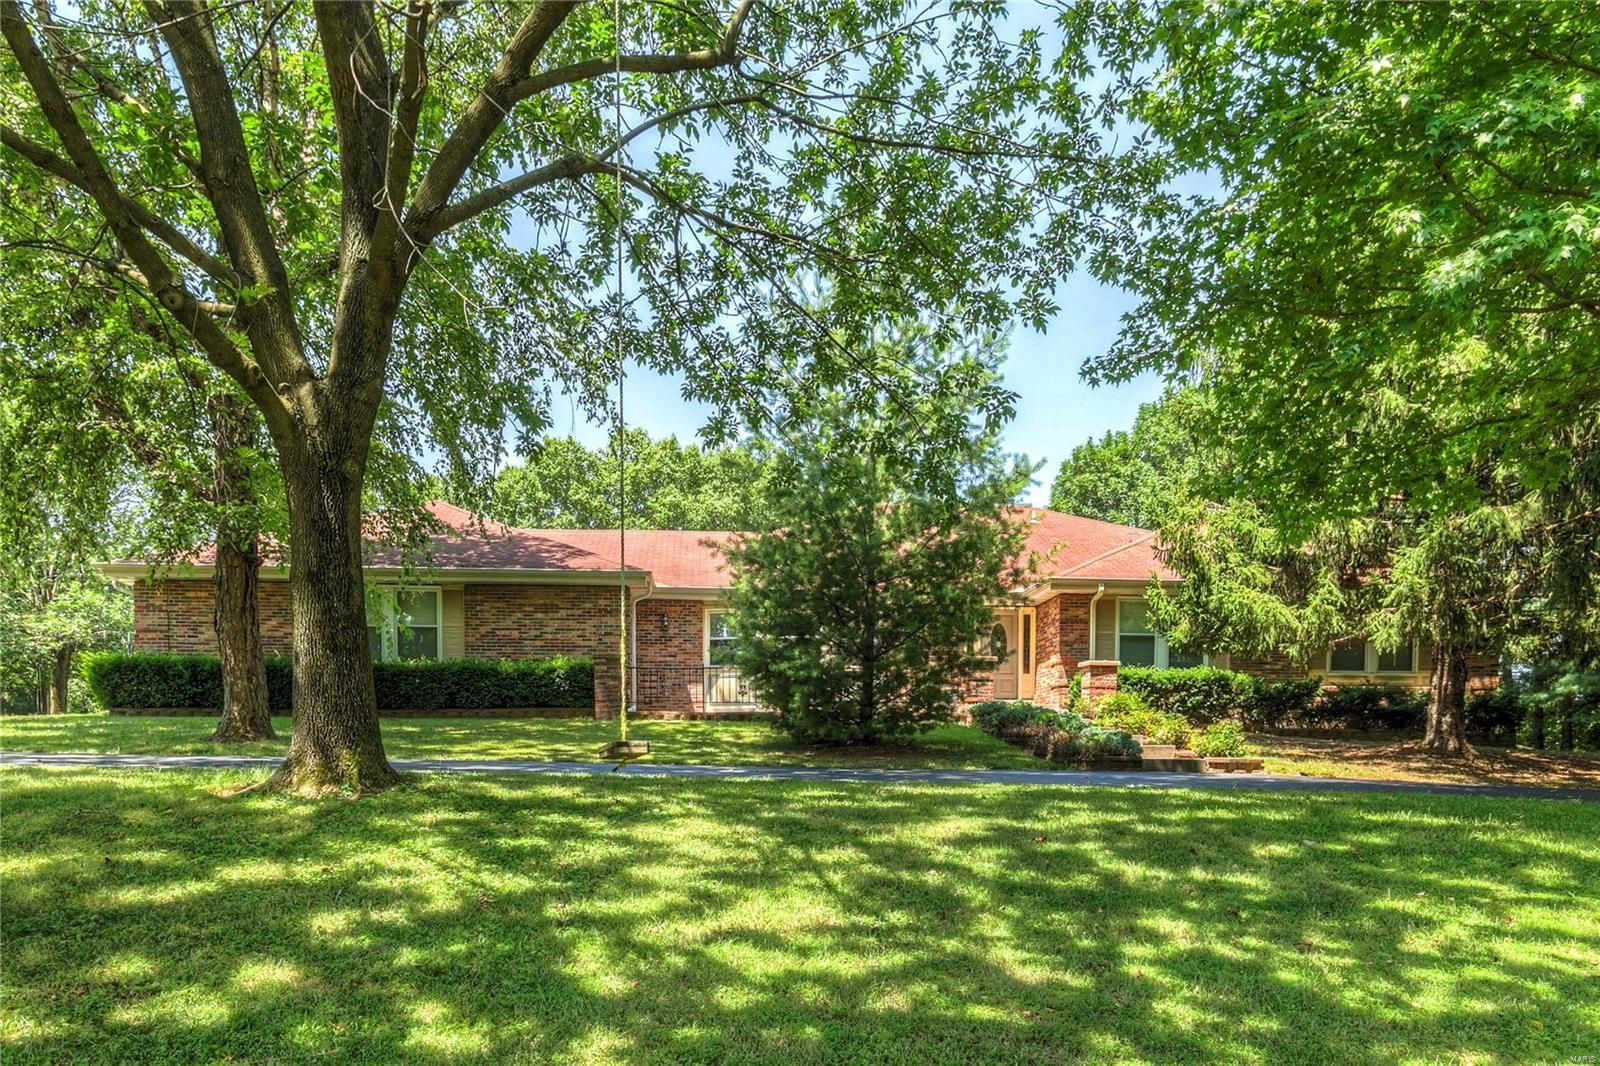 14325 Sinks Rd #4325 For Sale - Florissant, MO | Trulia